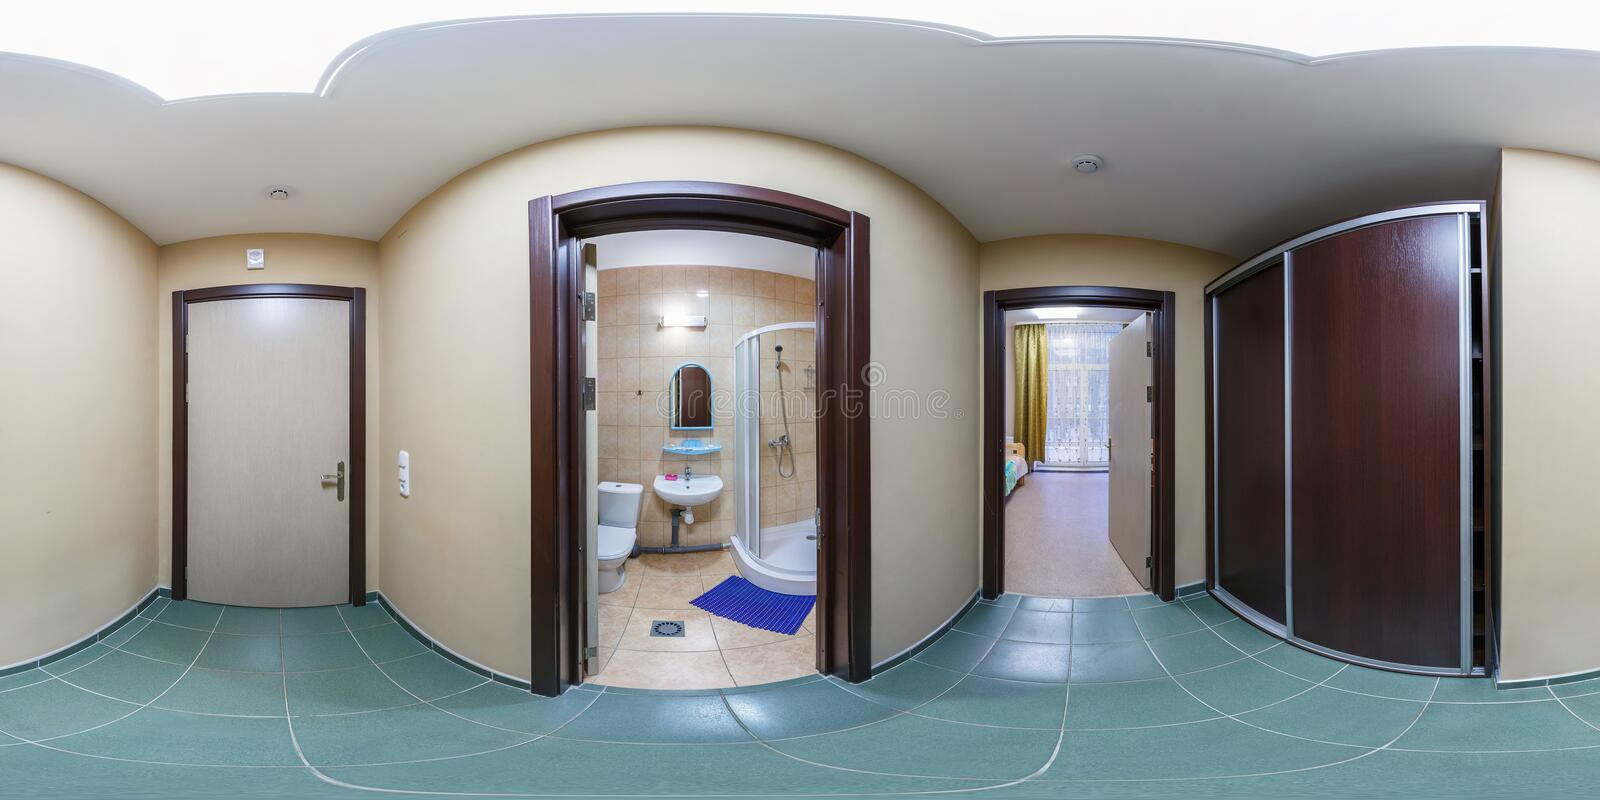 SOLIGORSK, BELARUS - SEPTEMBER, 2013: full seamless spherical panorama 360 degrees in corridor rooms of small hotel with view of. Bedroom and bathroom in royalty free stock photography